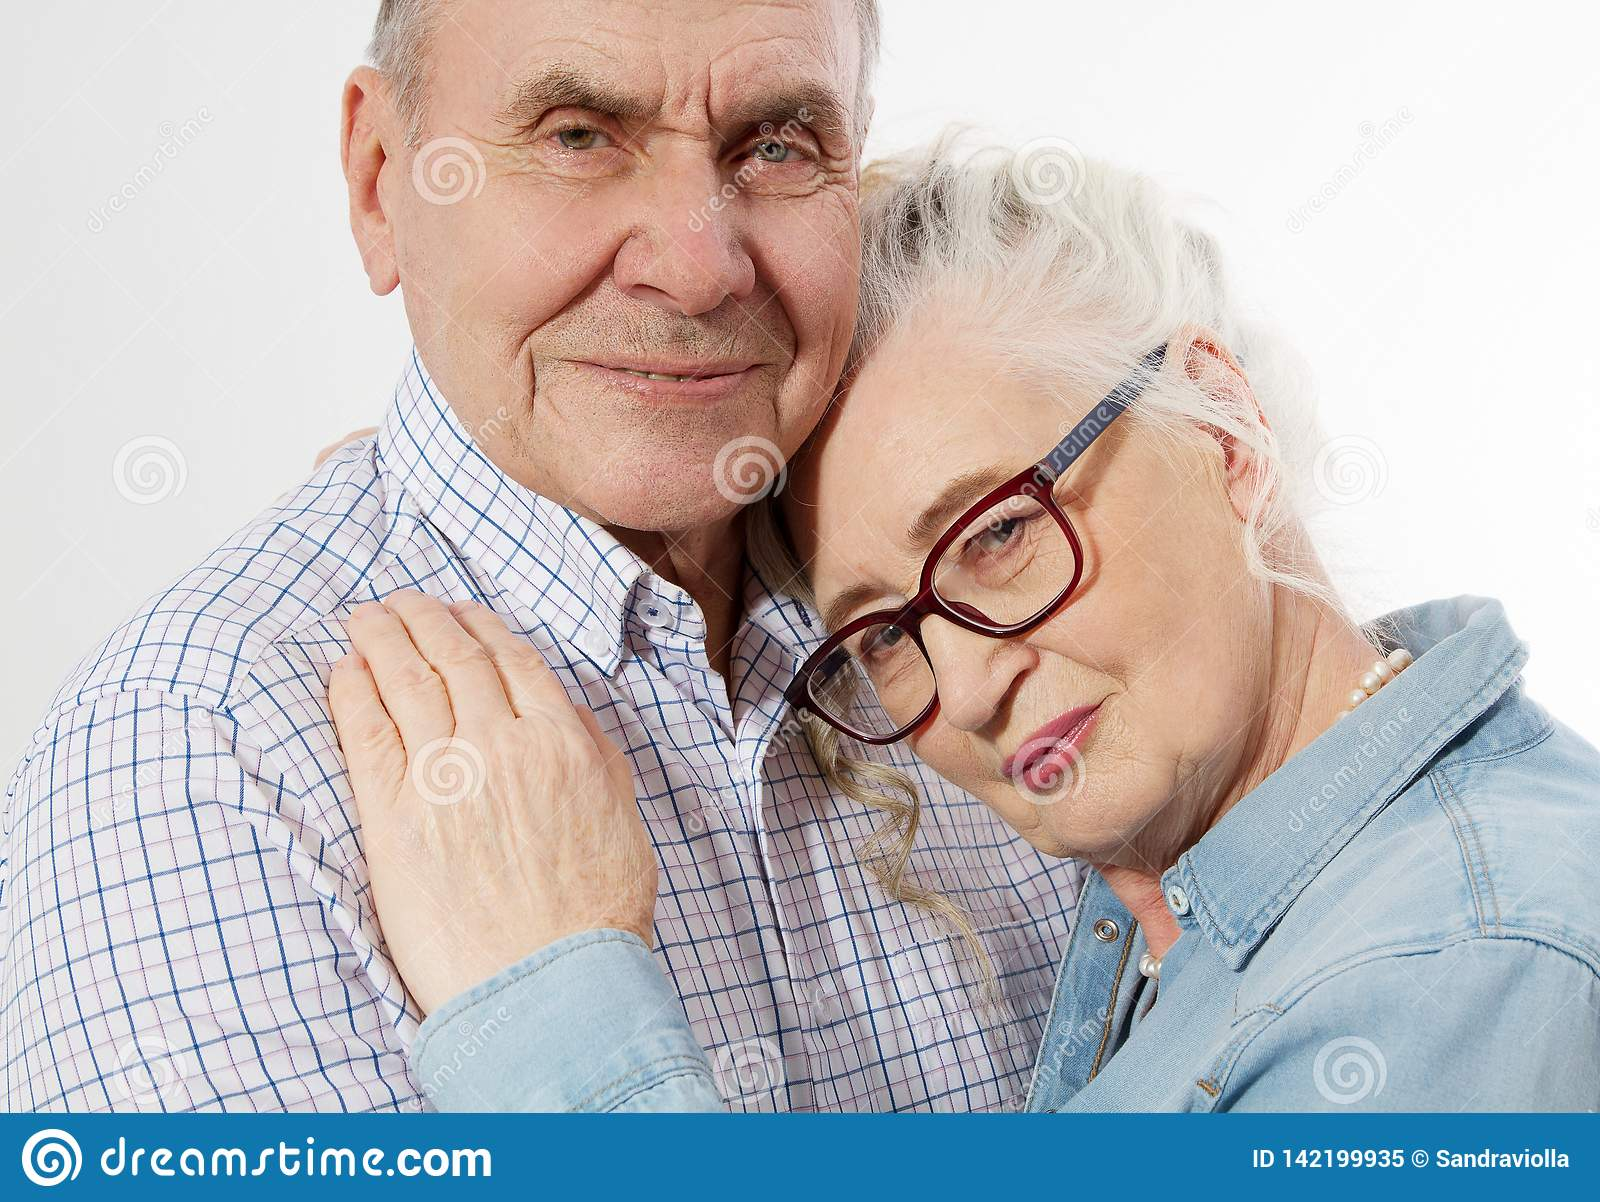 Closeup faces. Happy senior family couple isolated on white background. Close up portrait woman and man with wrinkled face.